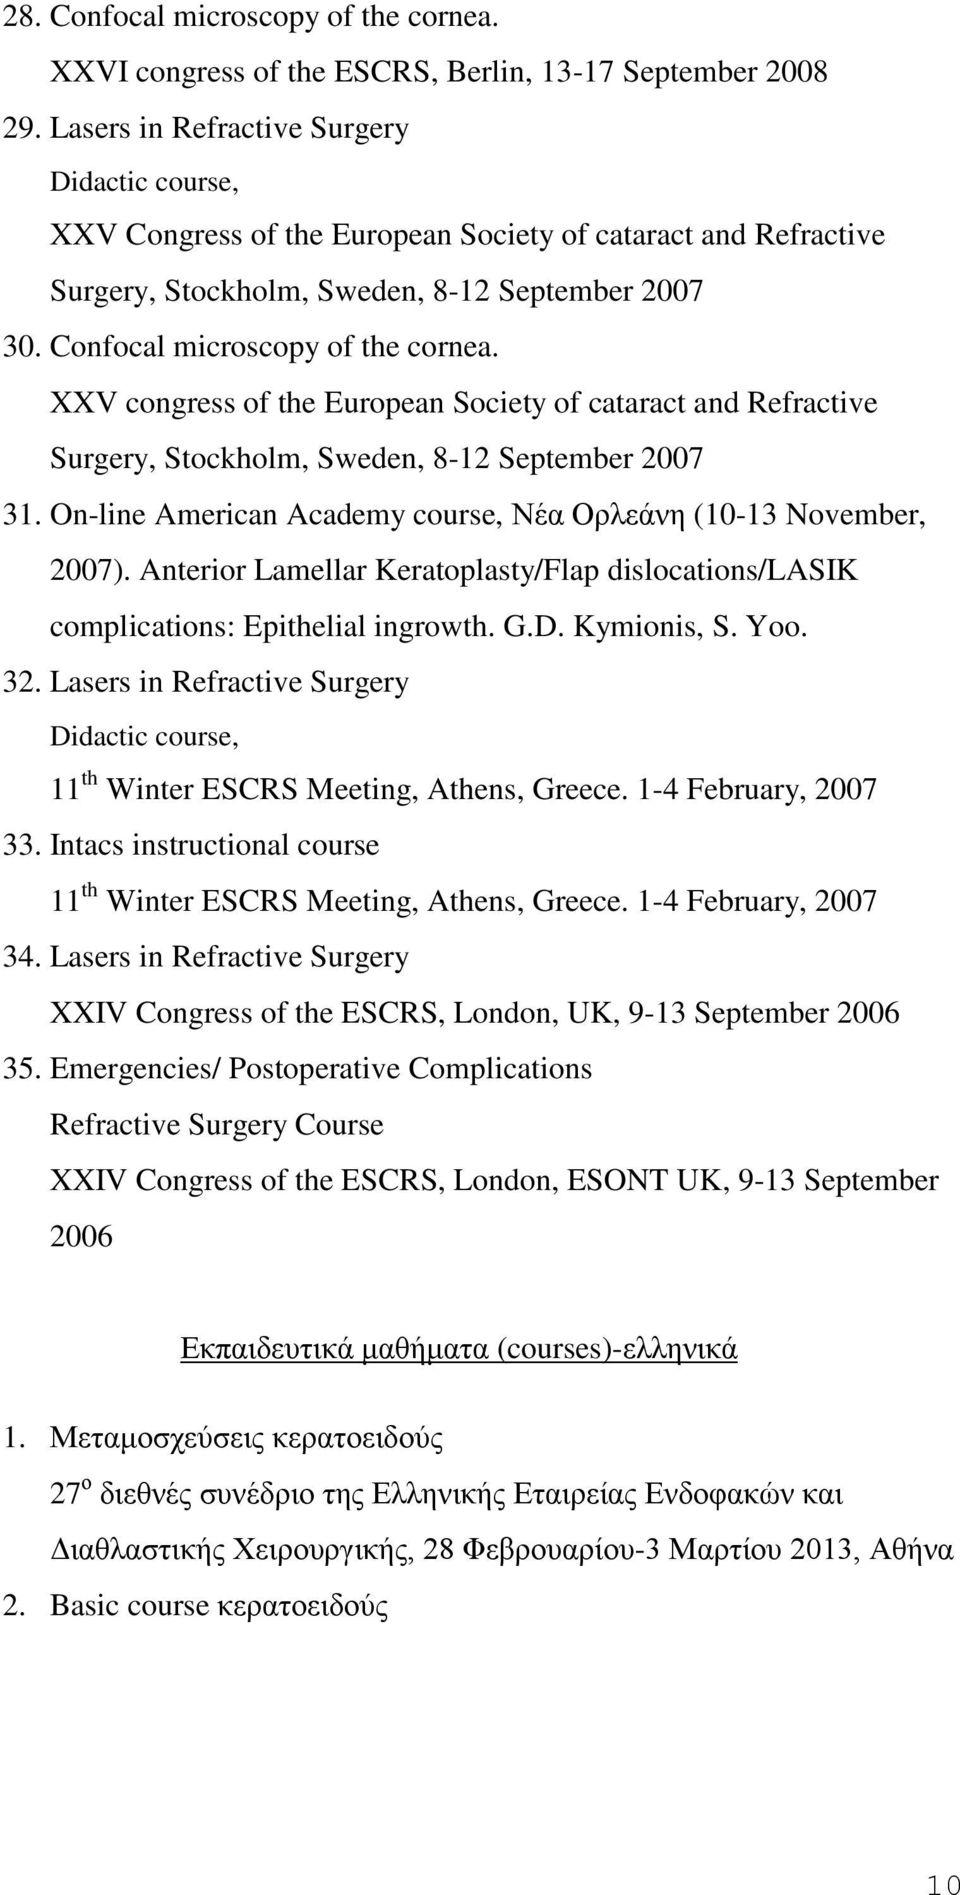 XXV congress of the European Society of cataract and Refractive Surgery, Stockholm, Sweden, 8-12 September 2007 31. On-line American Academy course, Νέα Ορλεάνη (10-13 November, 2007).